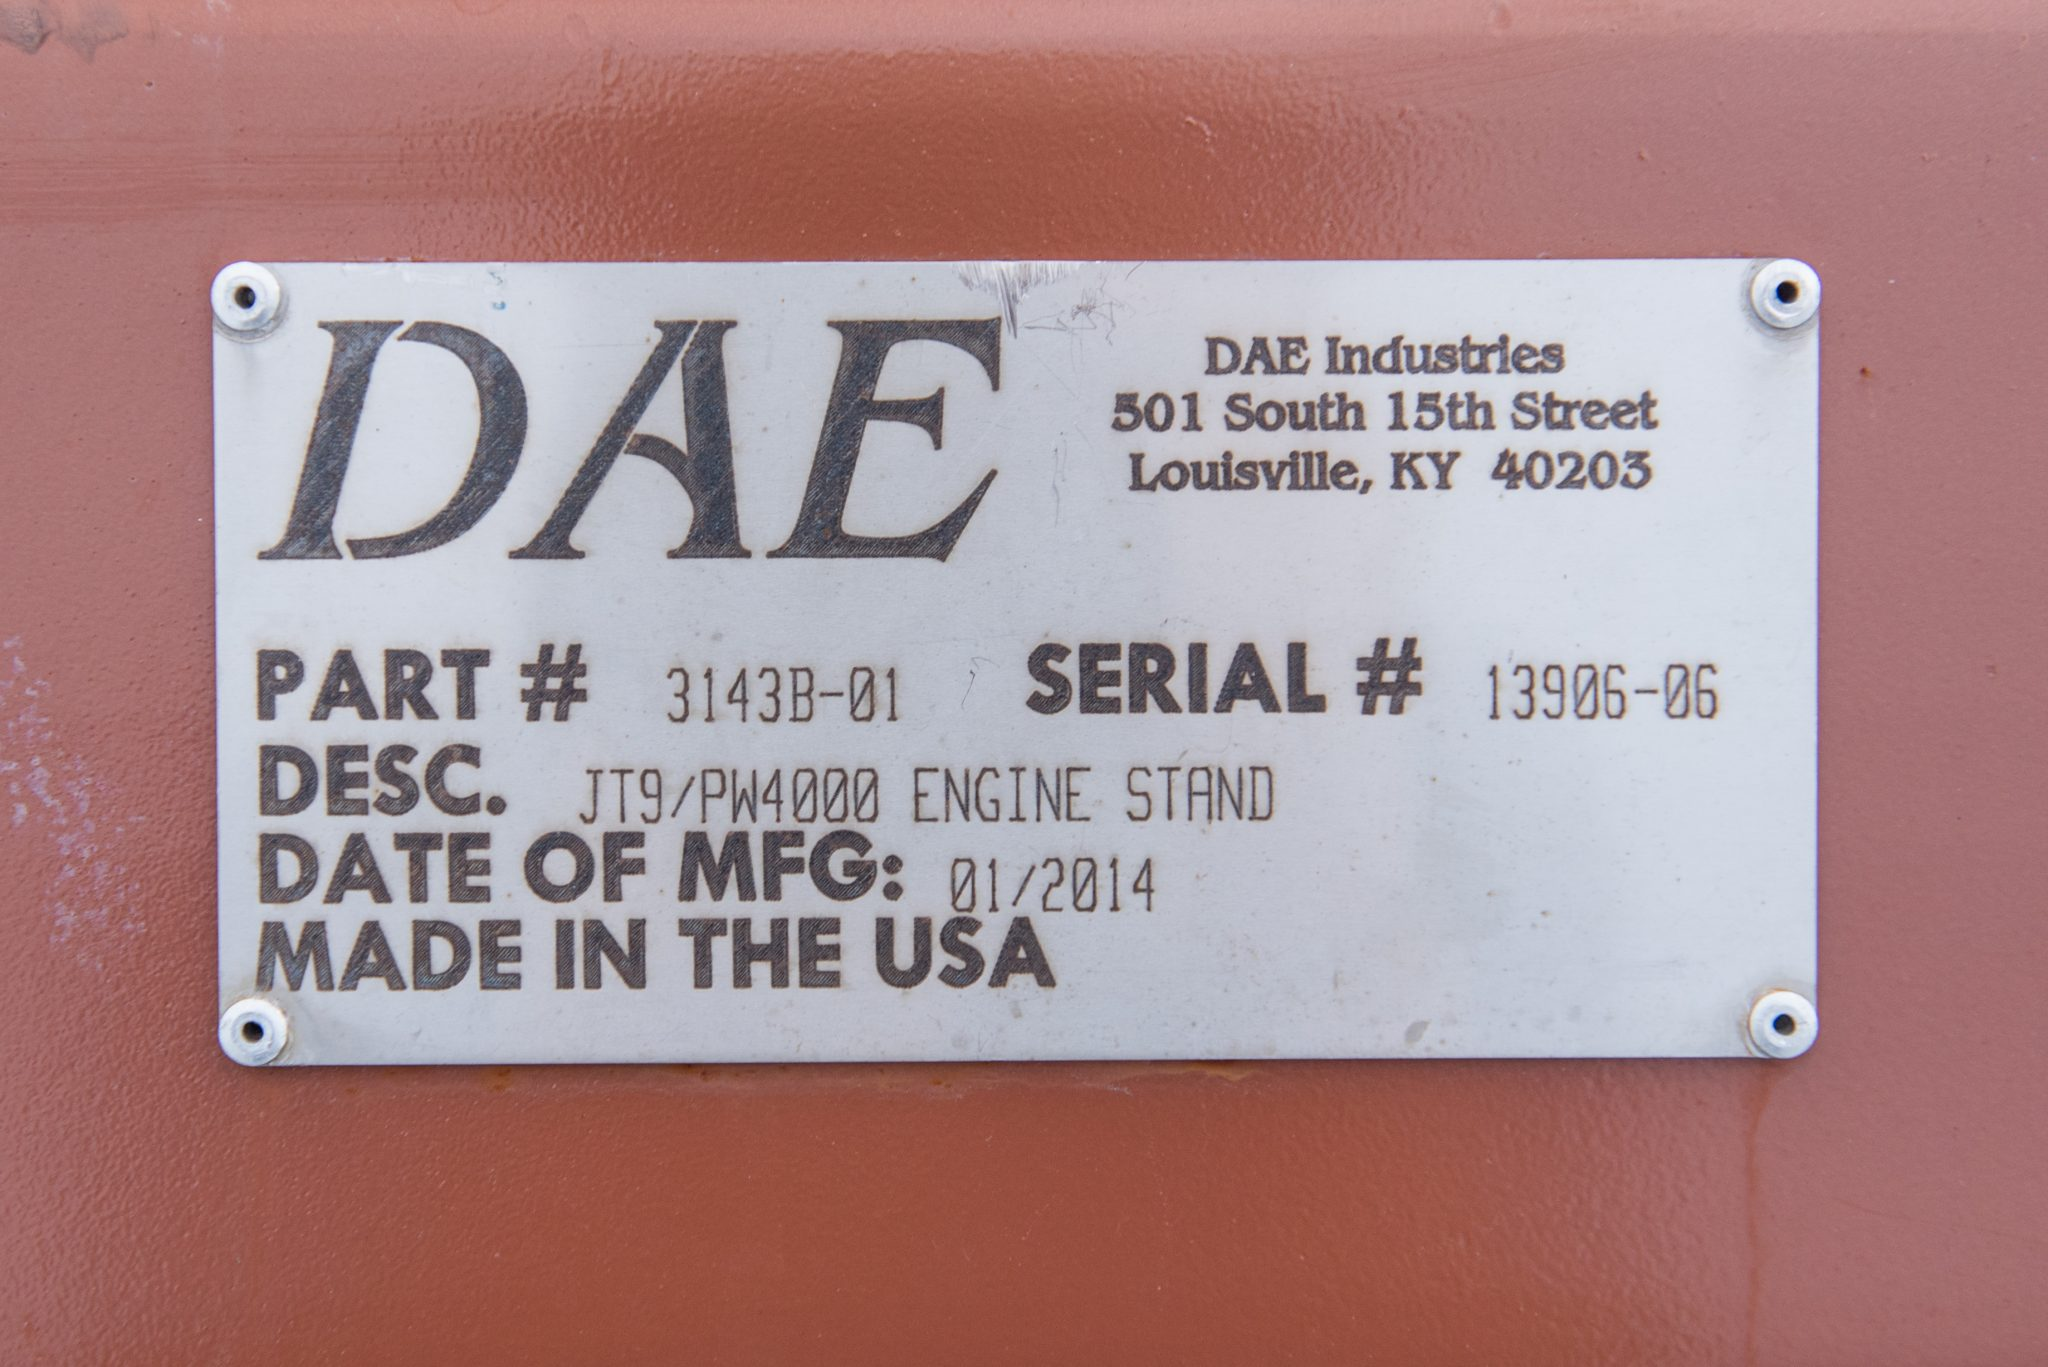 PW4000-JT9D DAE serial number